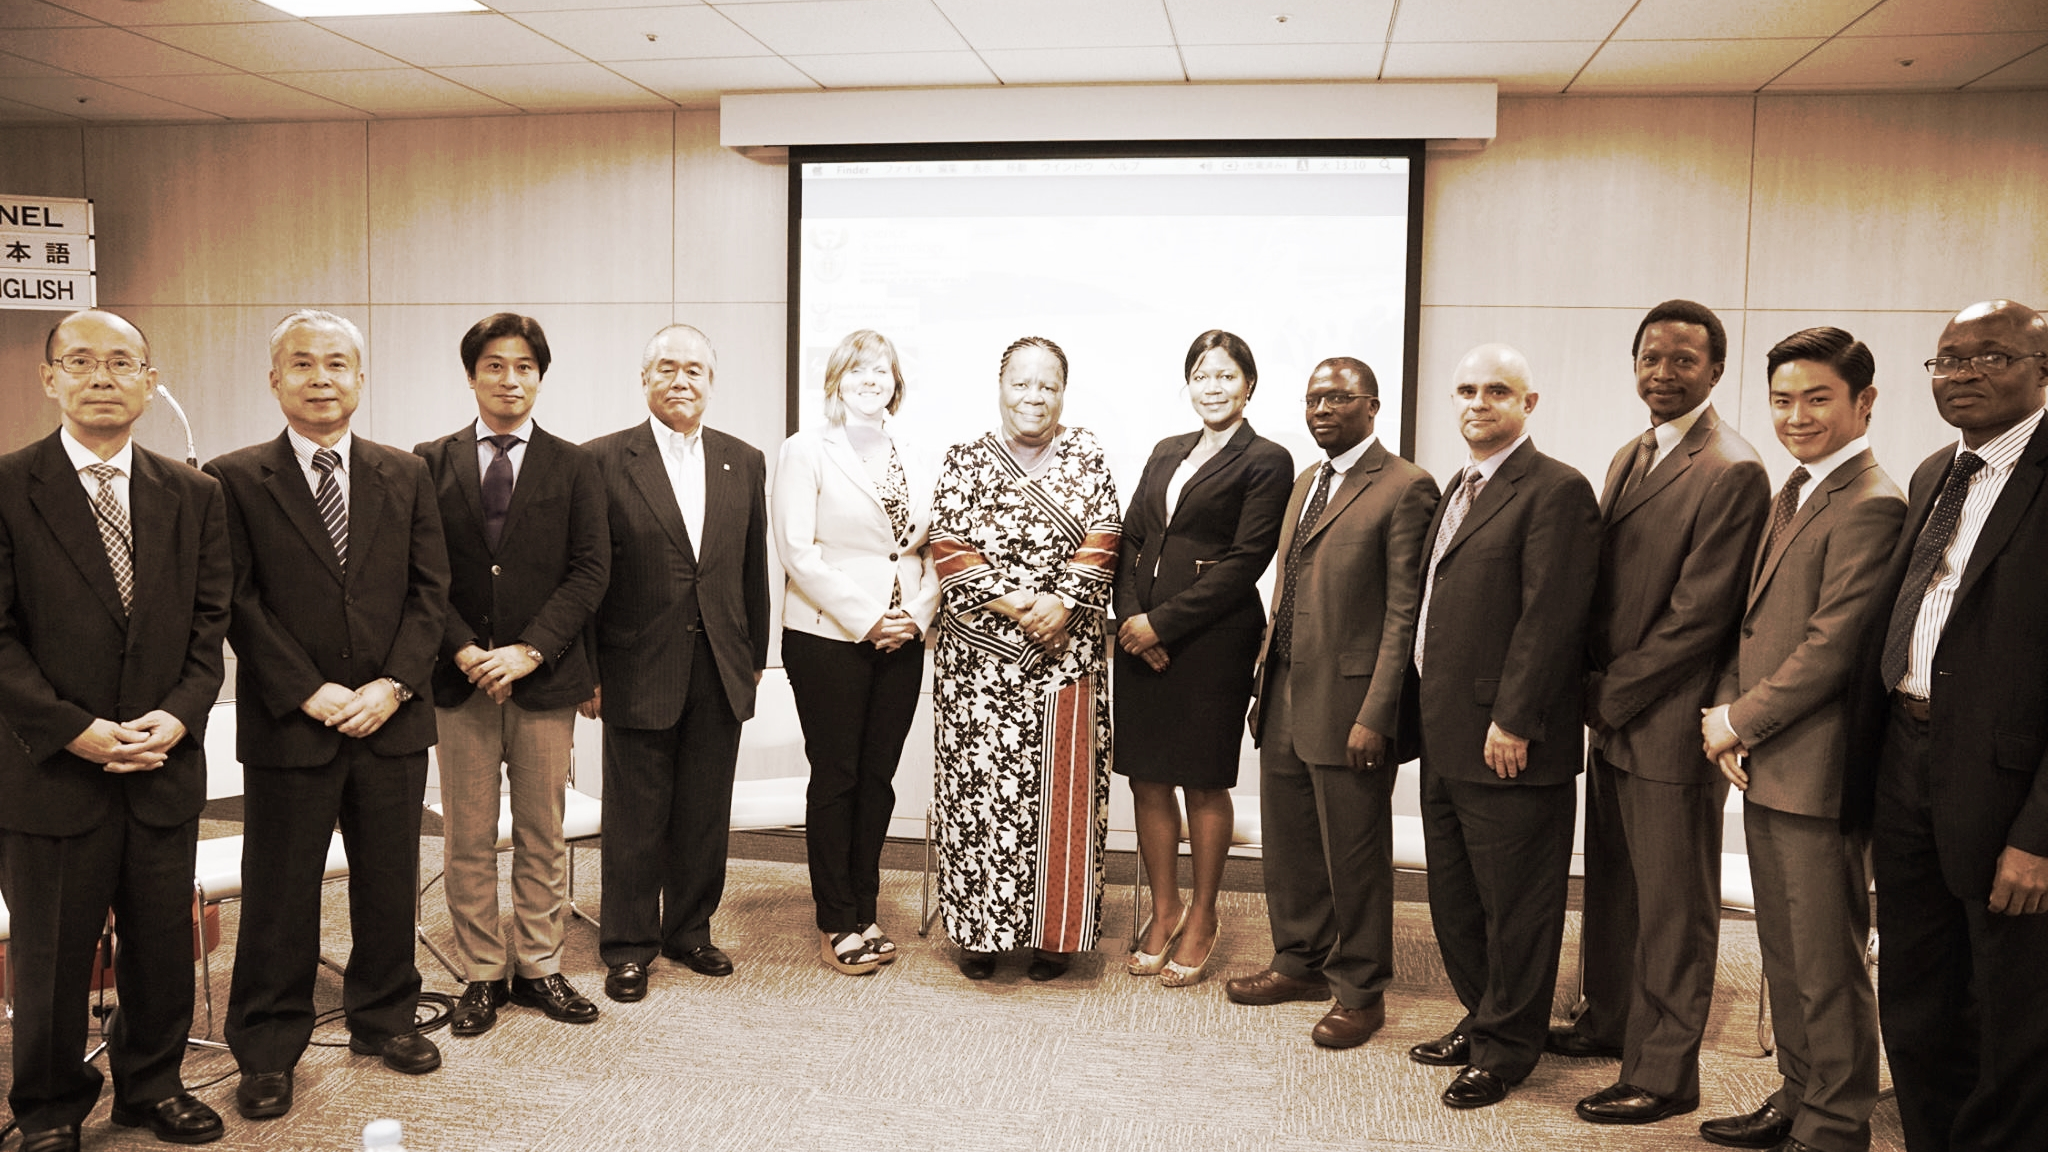 (Tokyo, Japan - 2014) Hydrogen power symposium with South African Minister of Science & Tech Naledi Pandor.